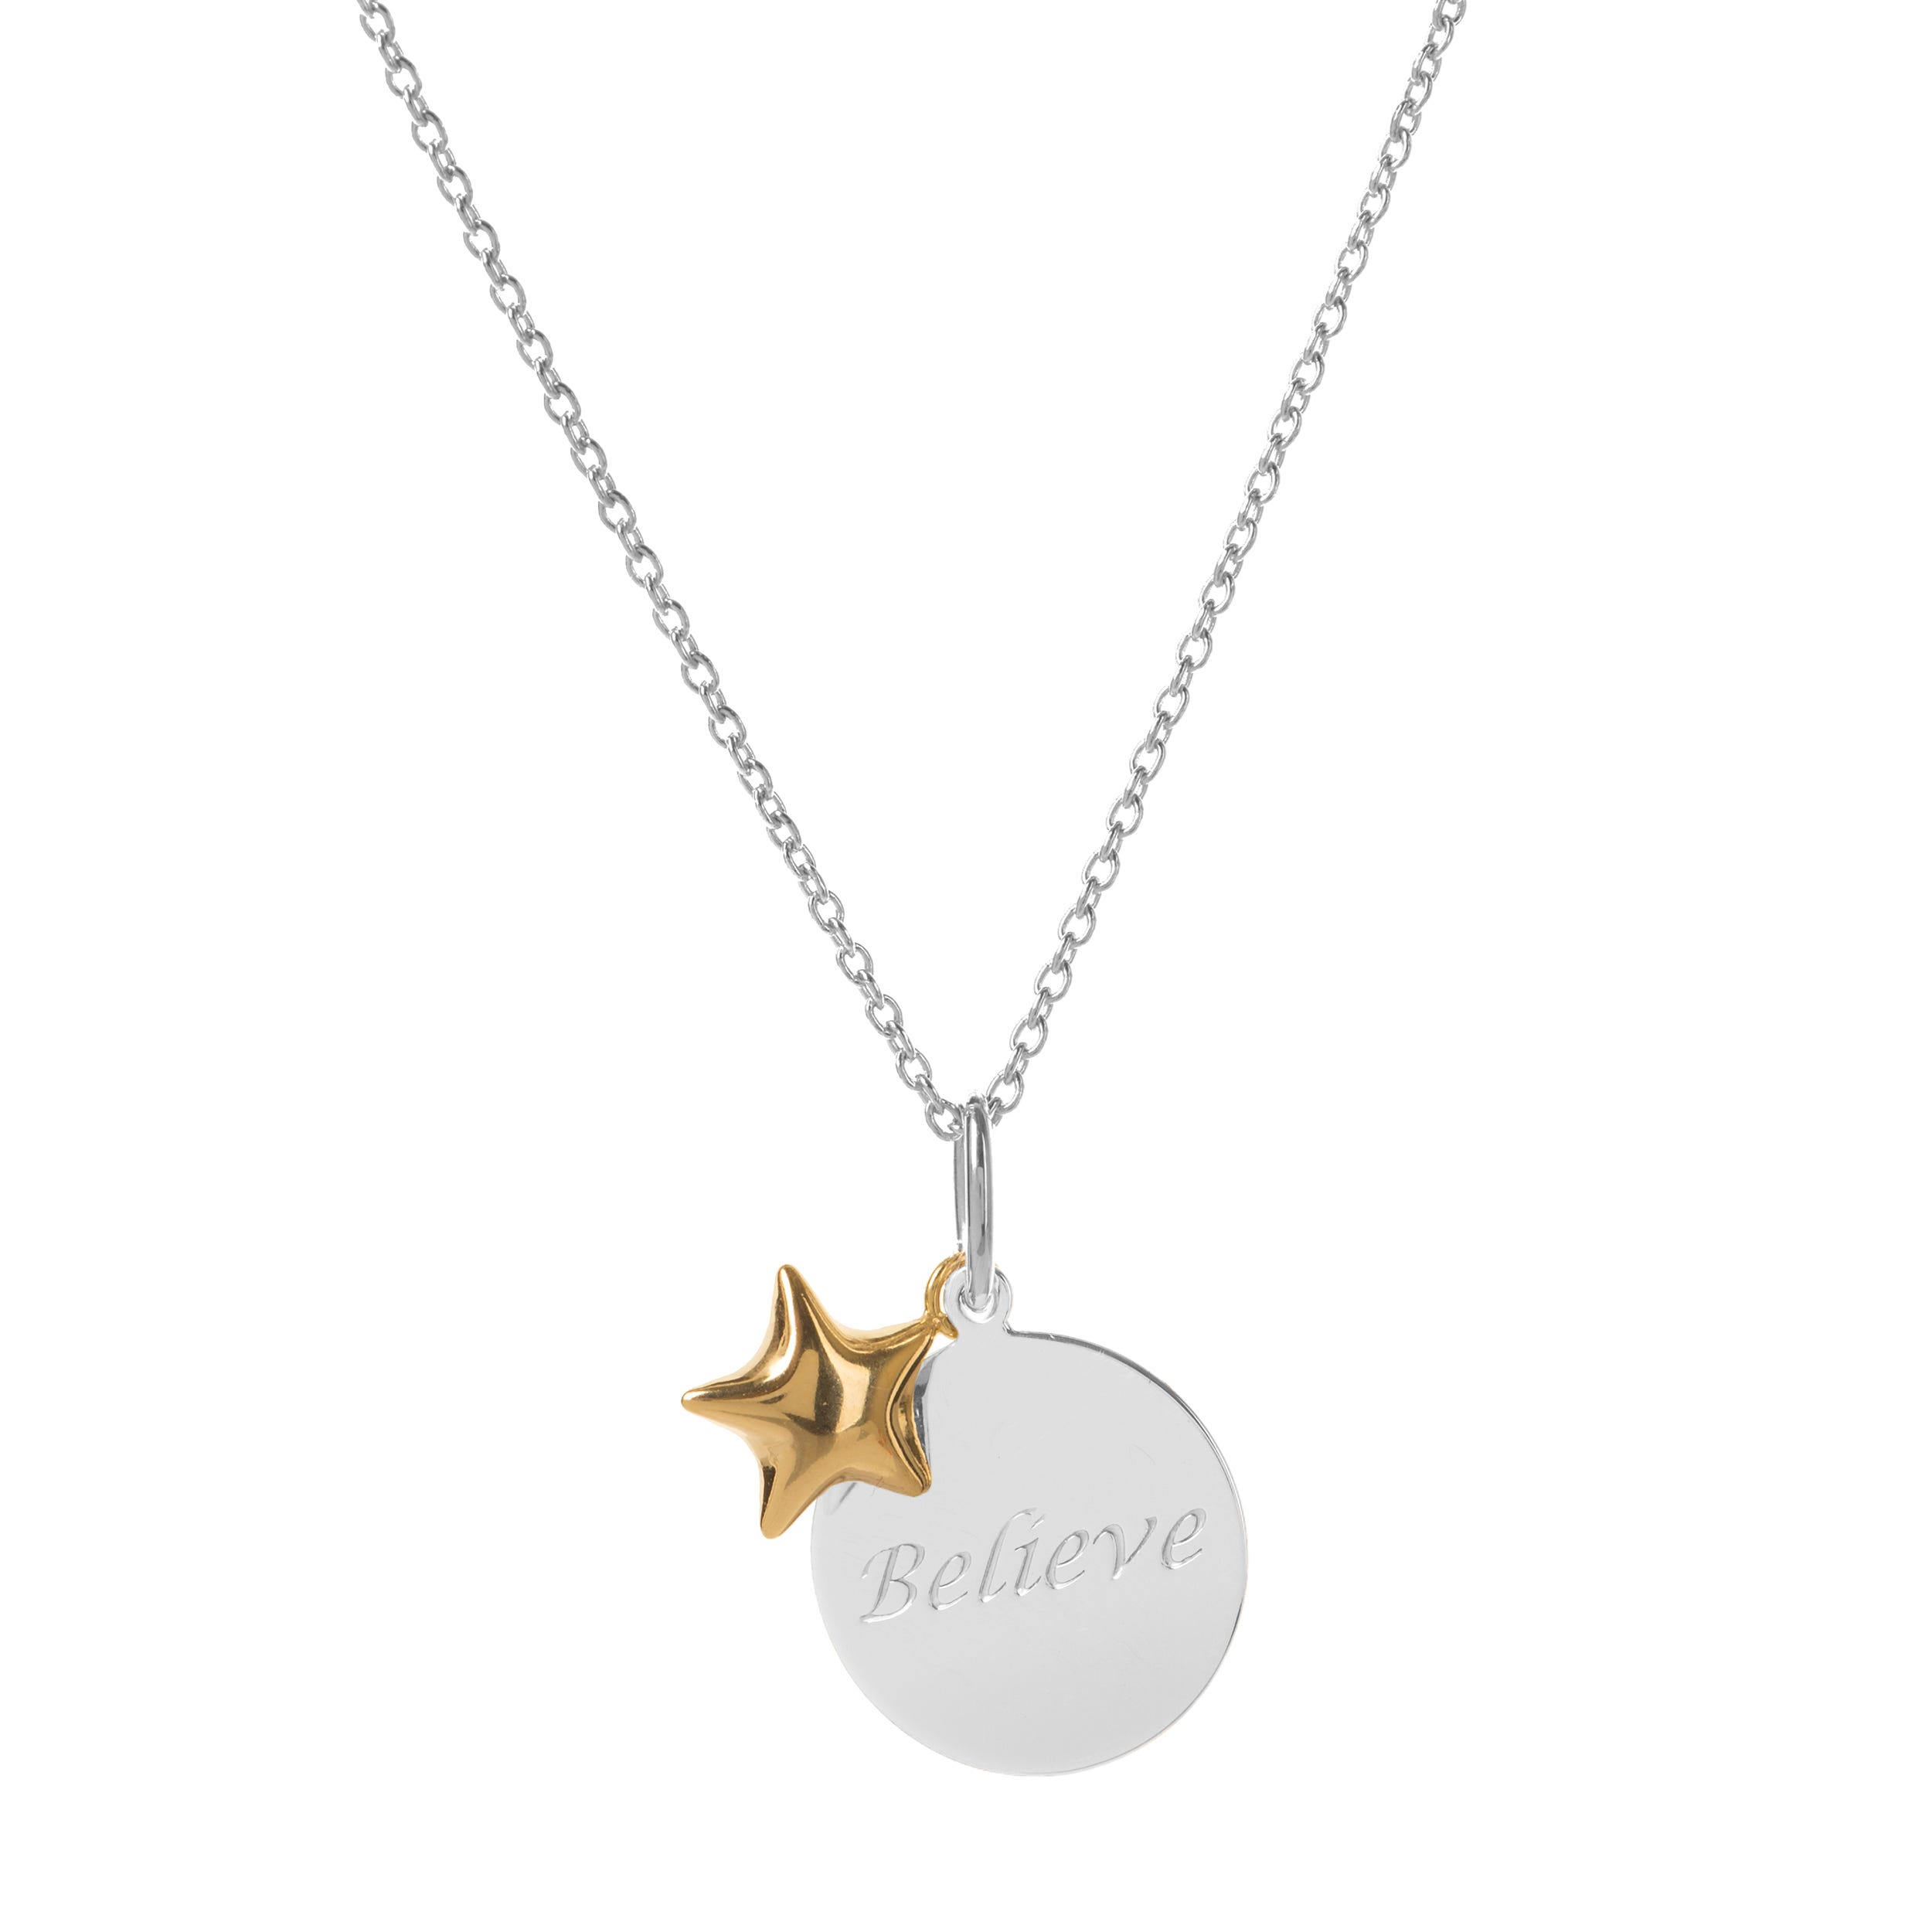 Believe Disc & Star Charm Pendant in Sterling Silver & 14k Gold